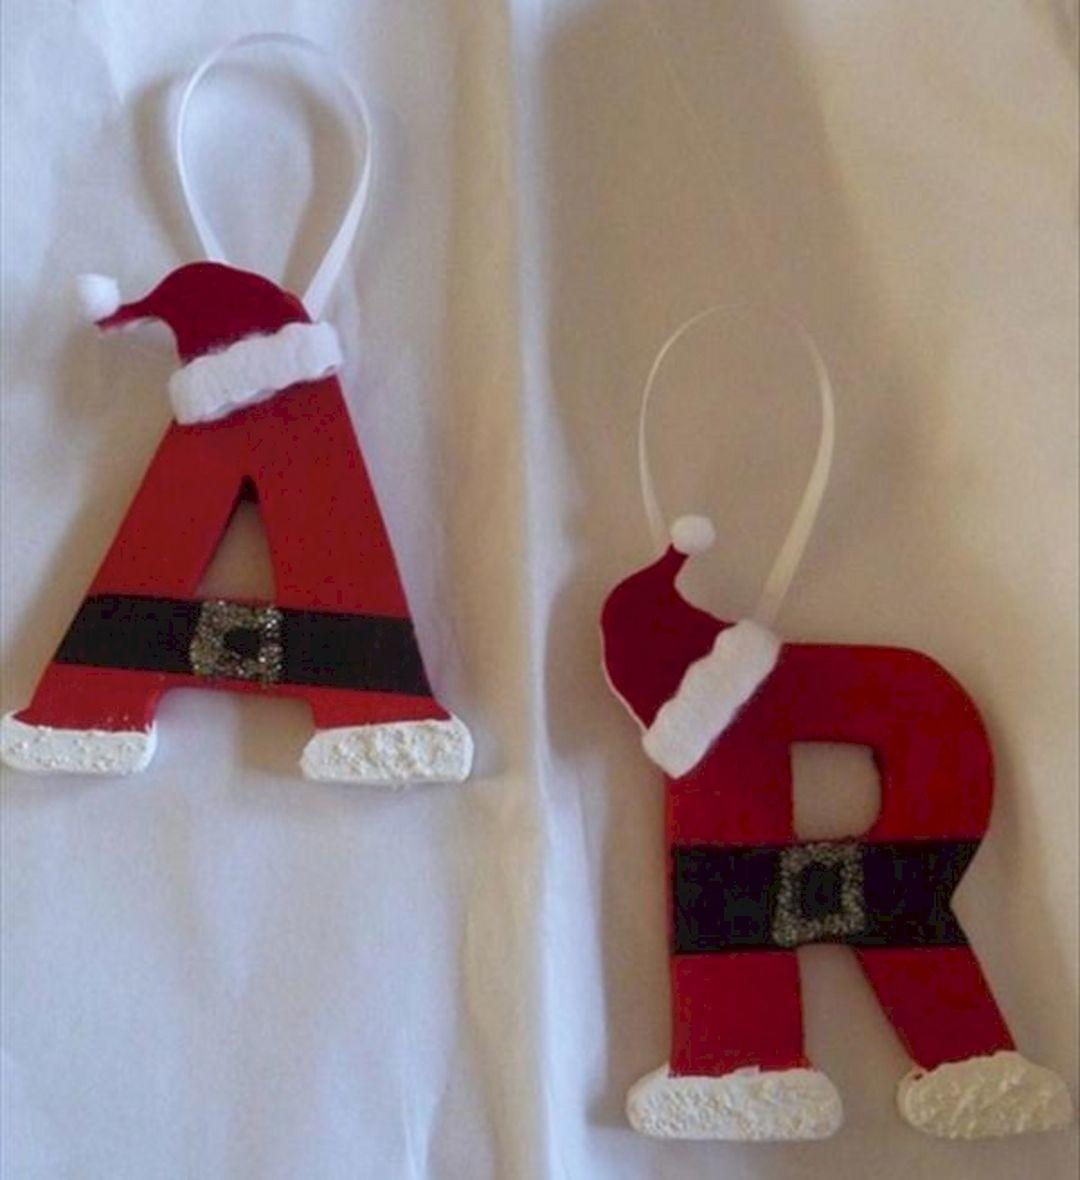 Easy Diy Christmas Crafts Ideas Your Kids 270 Montenr